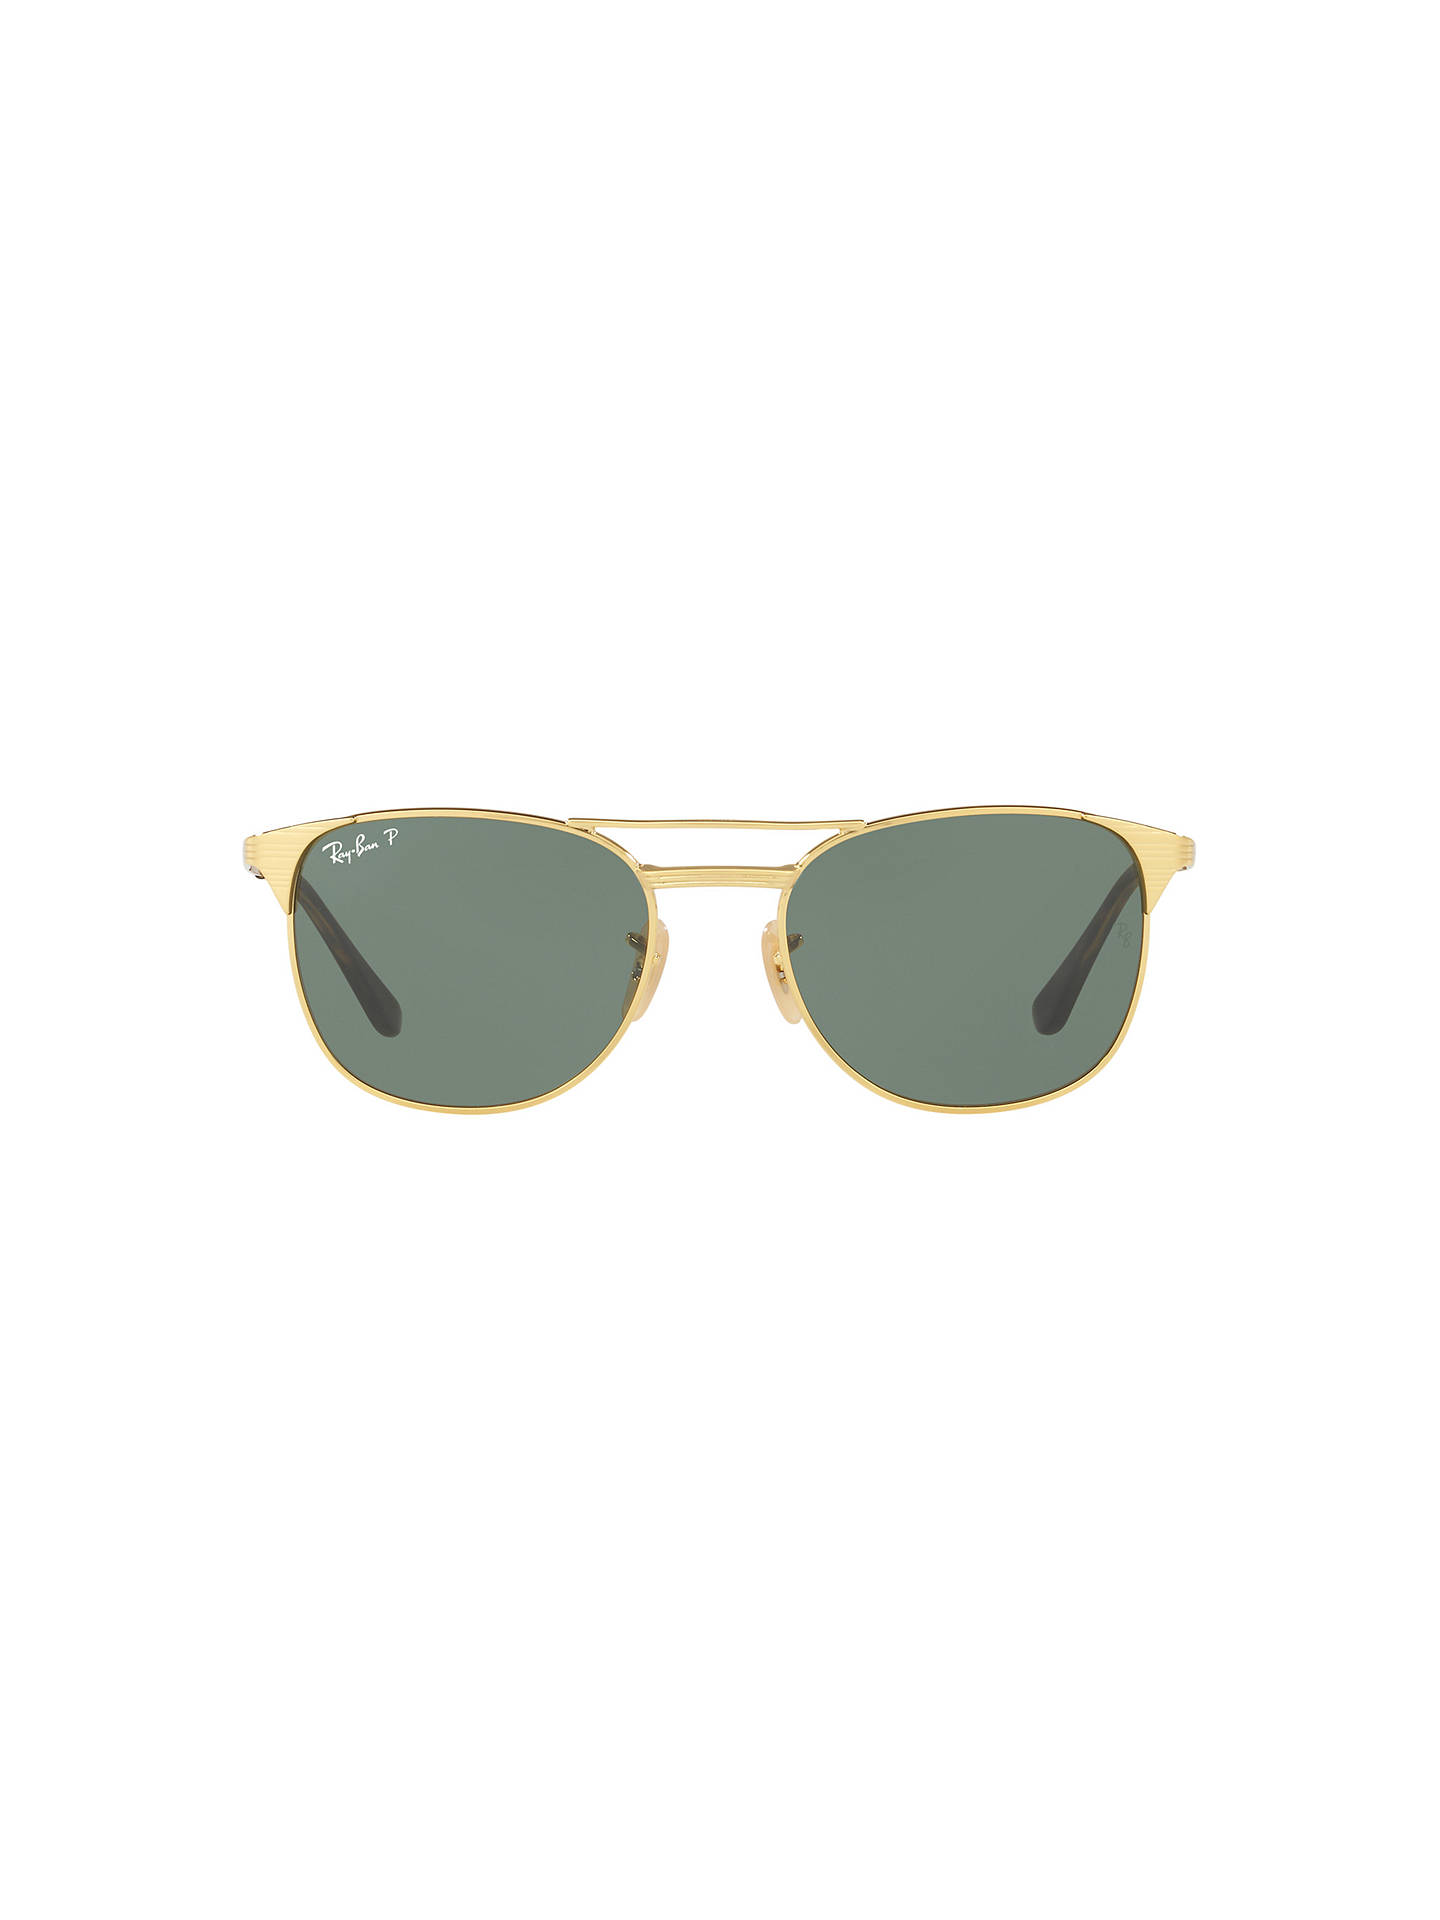 1a802044d8 ... Buy Ray-Ban RB3429M Signet Polarised Square Sunglasses